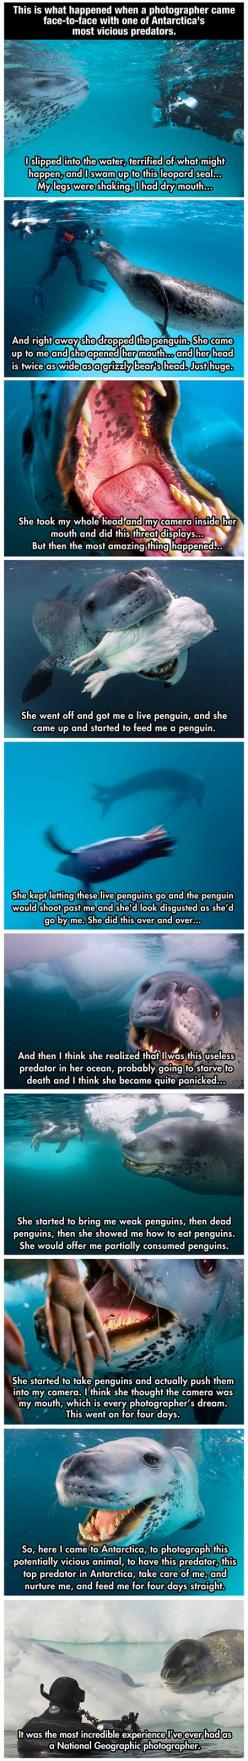 Photographer encounters vicious antarctic predator, who tries to teach him to be a better leopard seal so he'll survive in the wild: Geographic Photographer, Vicious Predator, Absolutely Amazing, Dream Job, Animal Stories